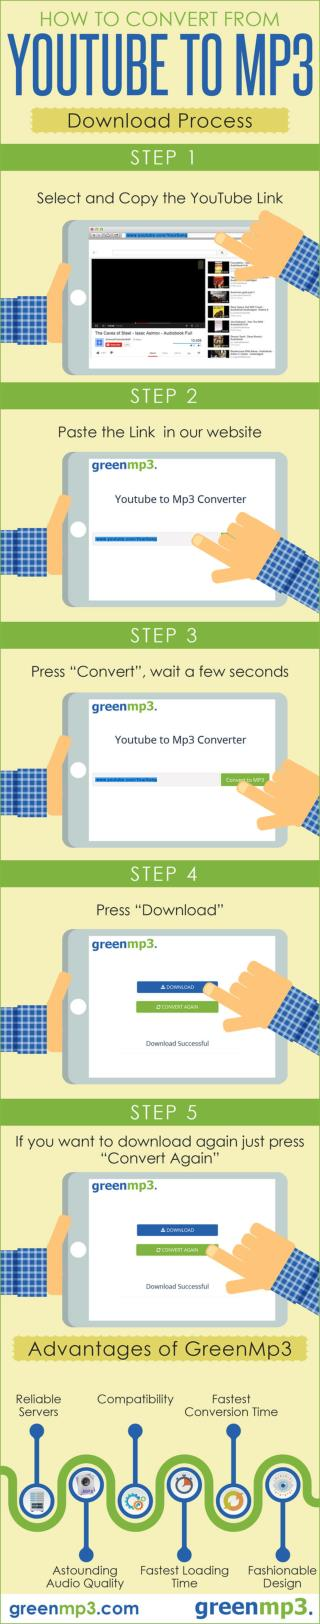 GreenMp3  free online converting tool